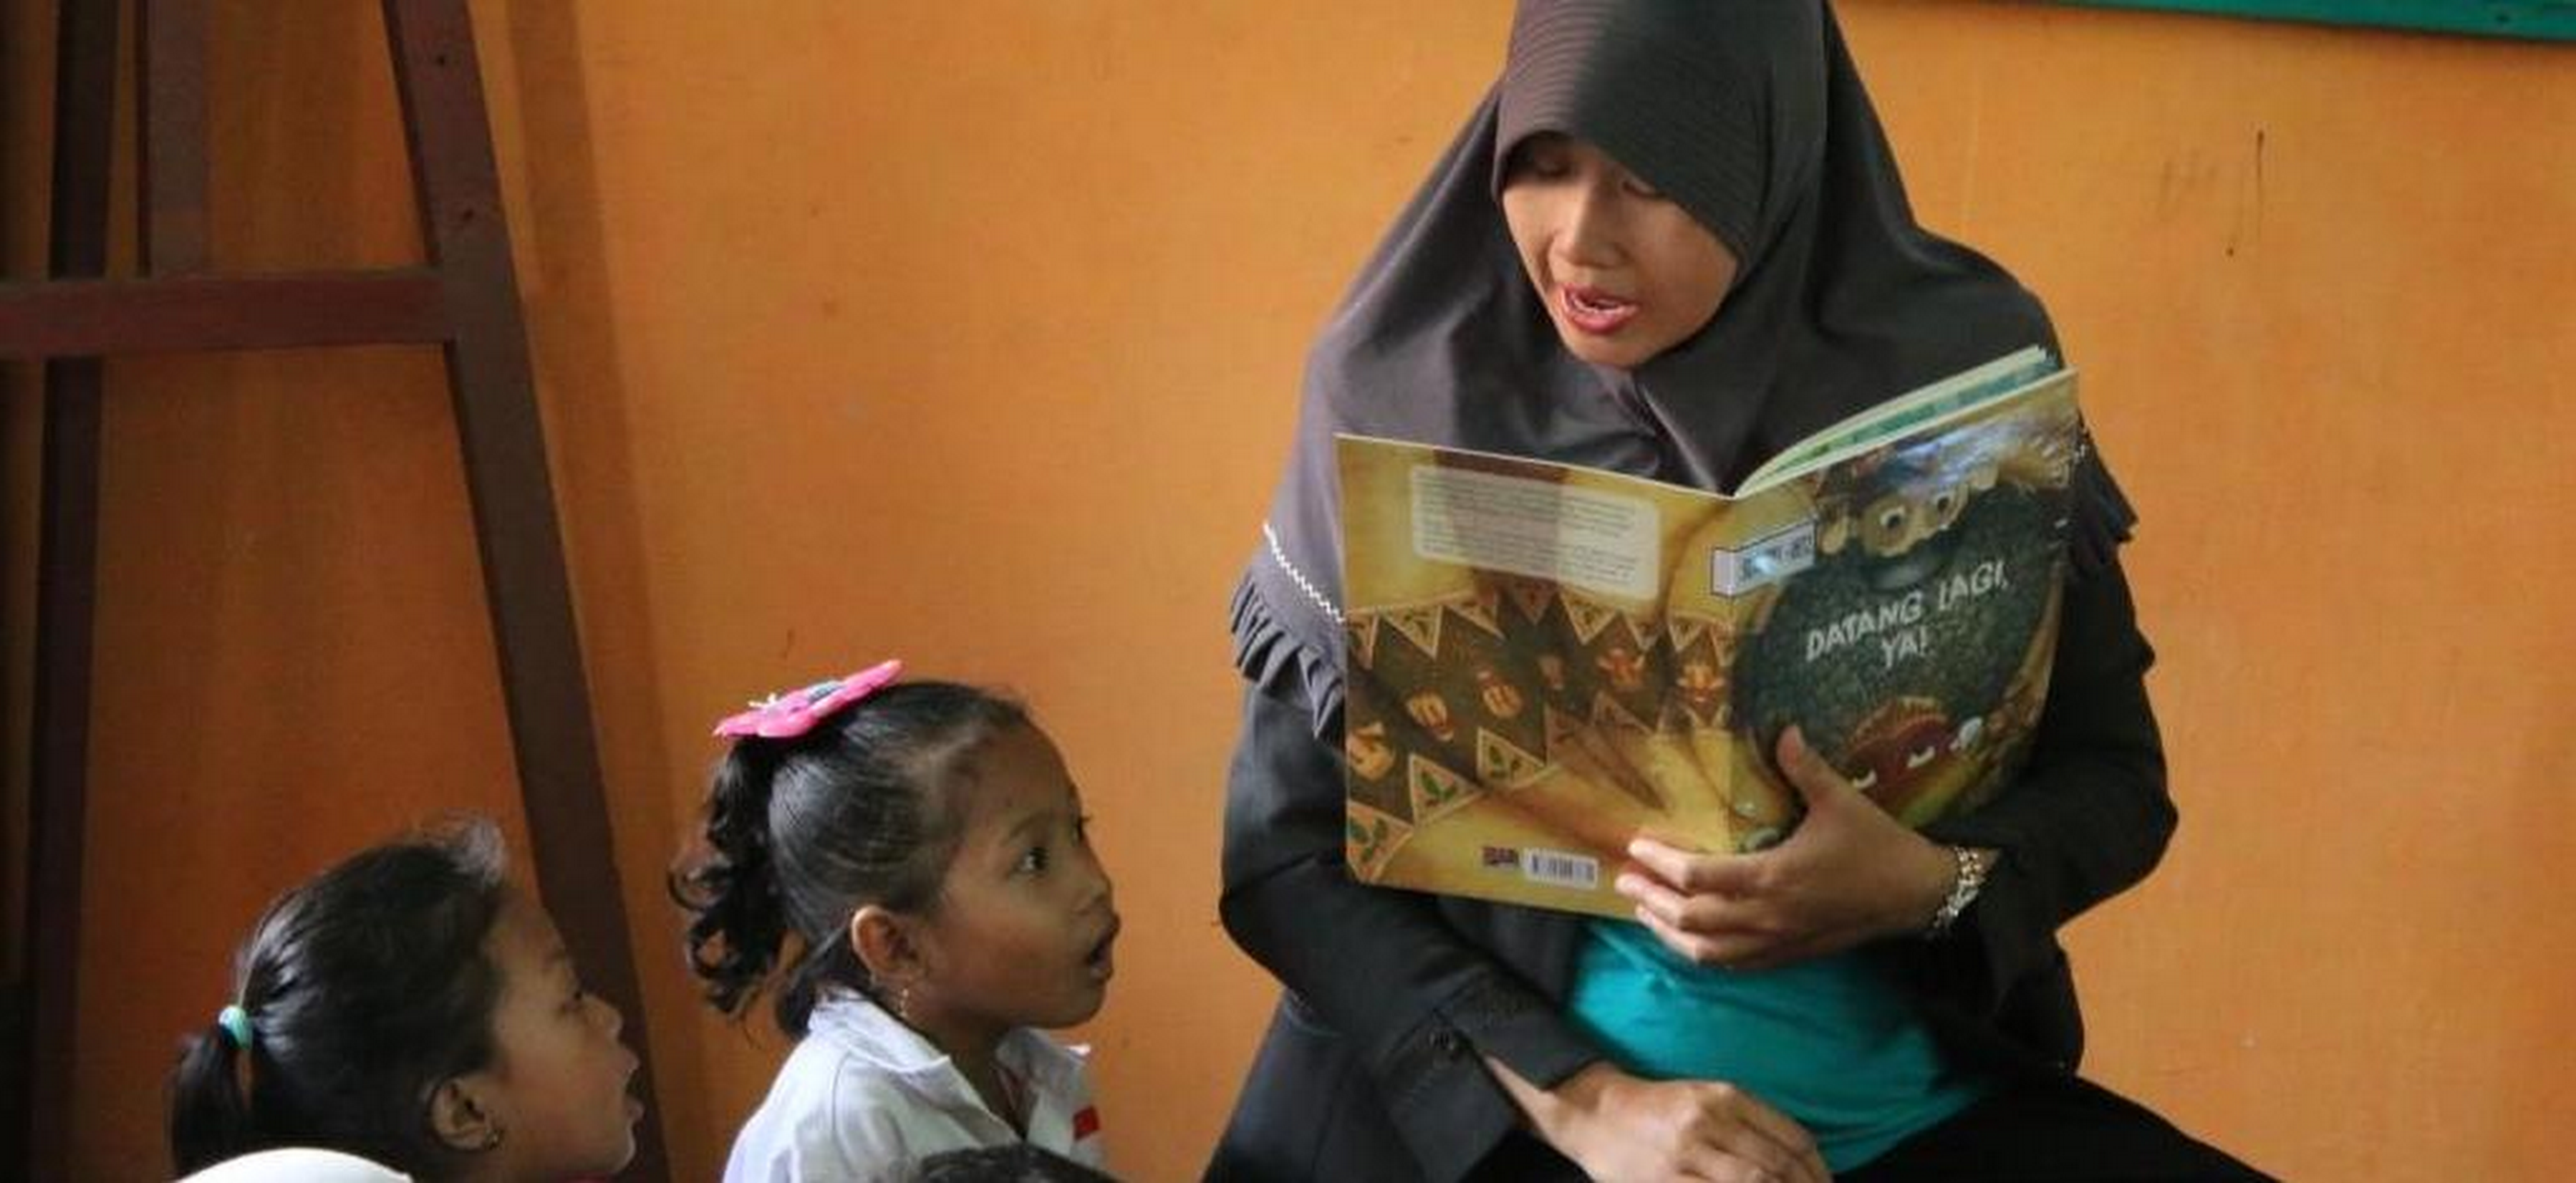 Siti Arofa reads to students at SD Negeri Sidorukan school